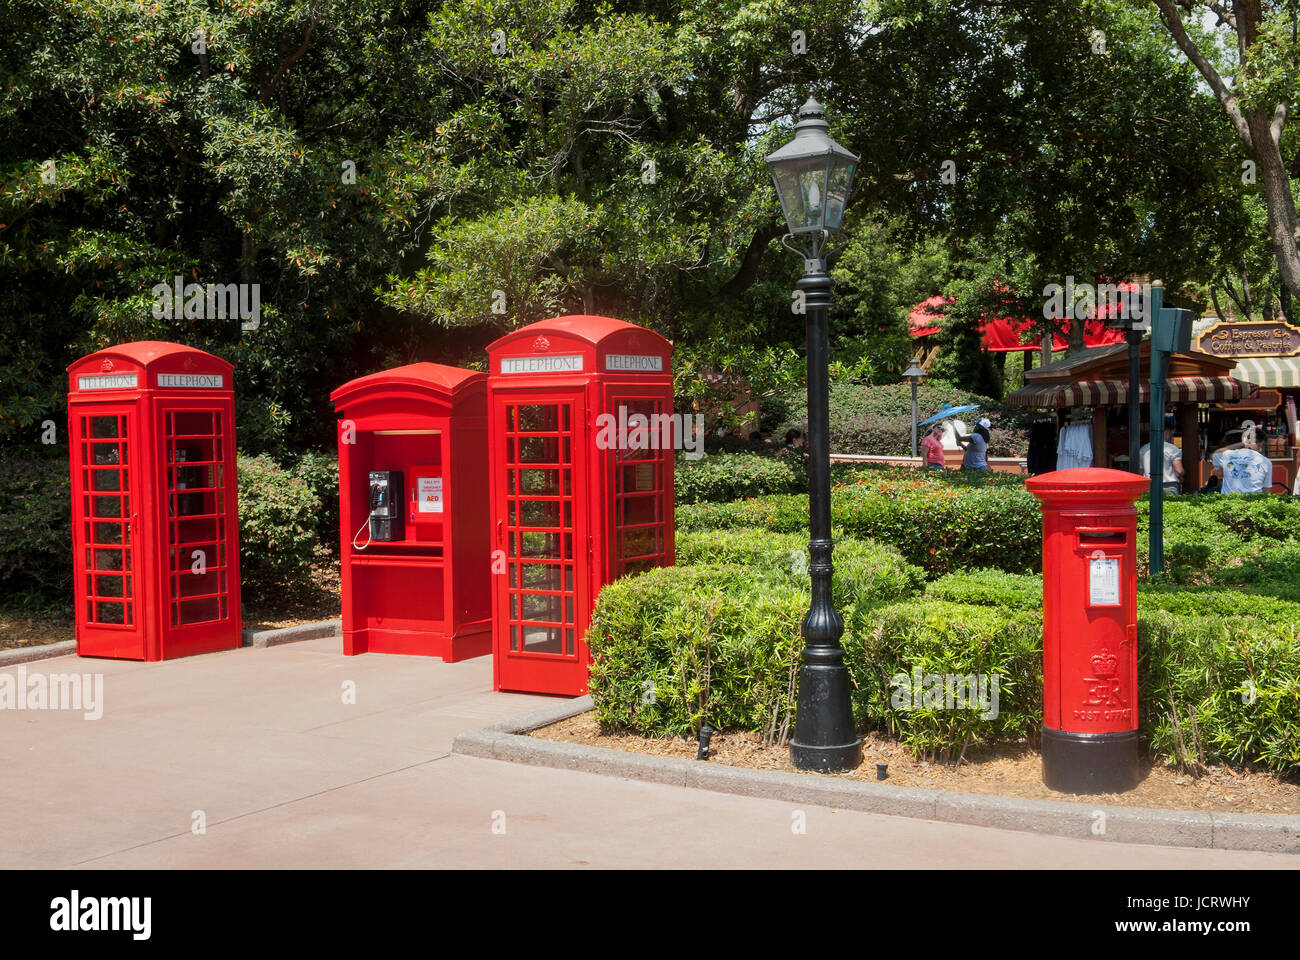 Iconic red phone boxes and mail box at Epcot theme park in Orlando, Florida. - Stock Image